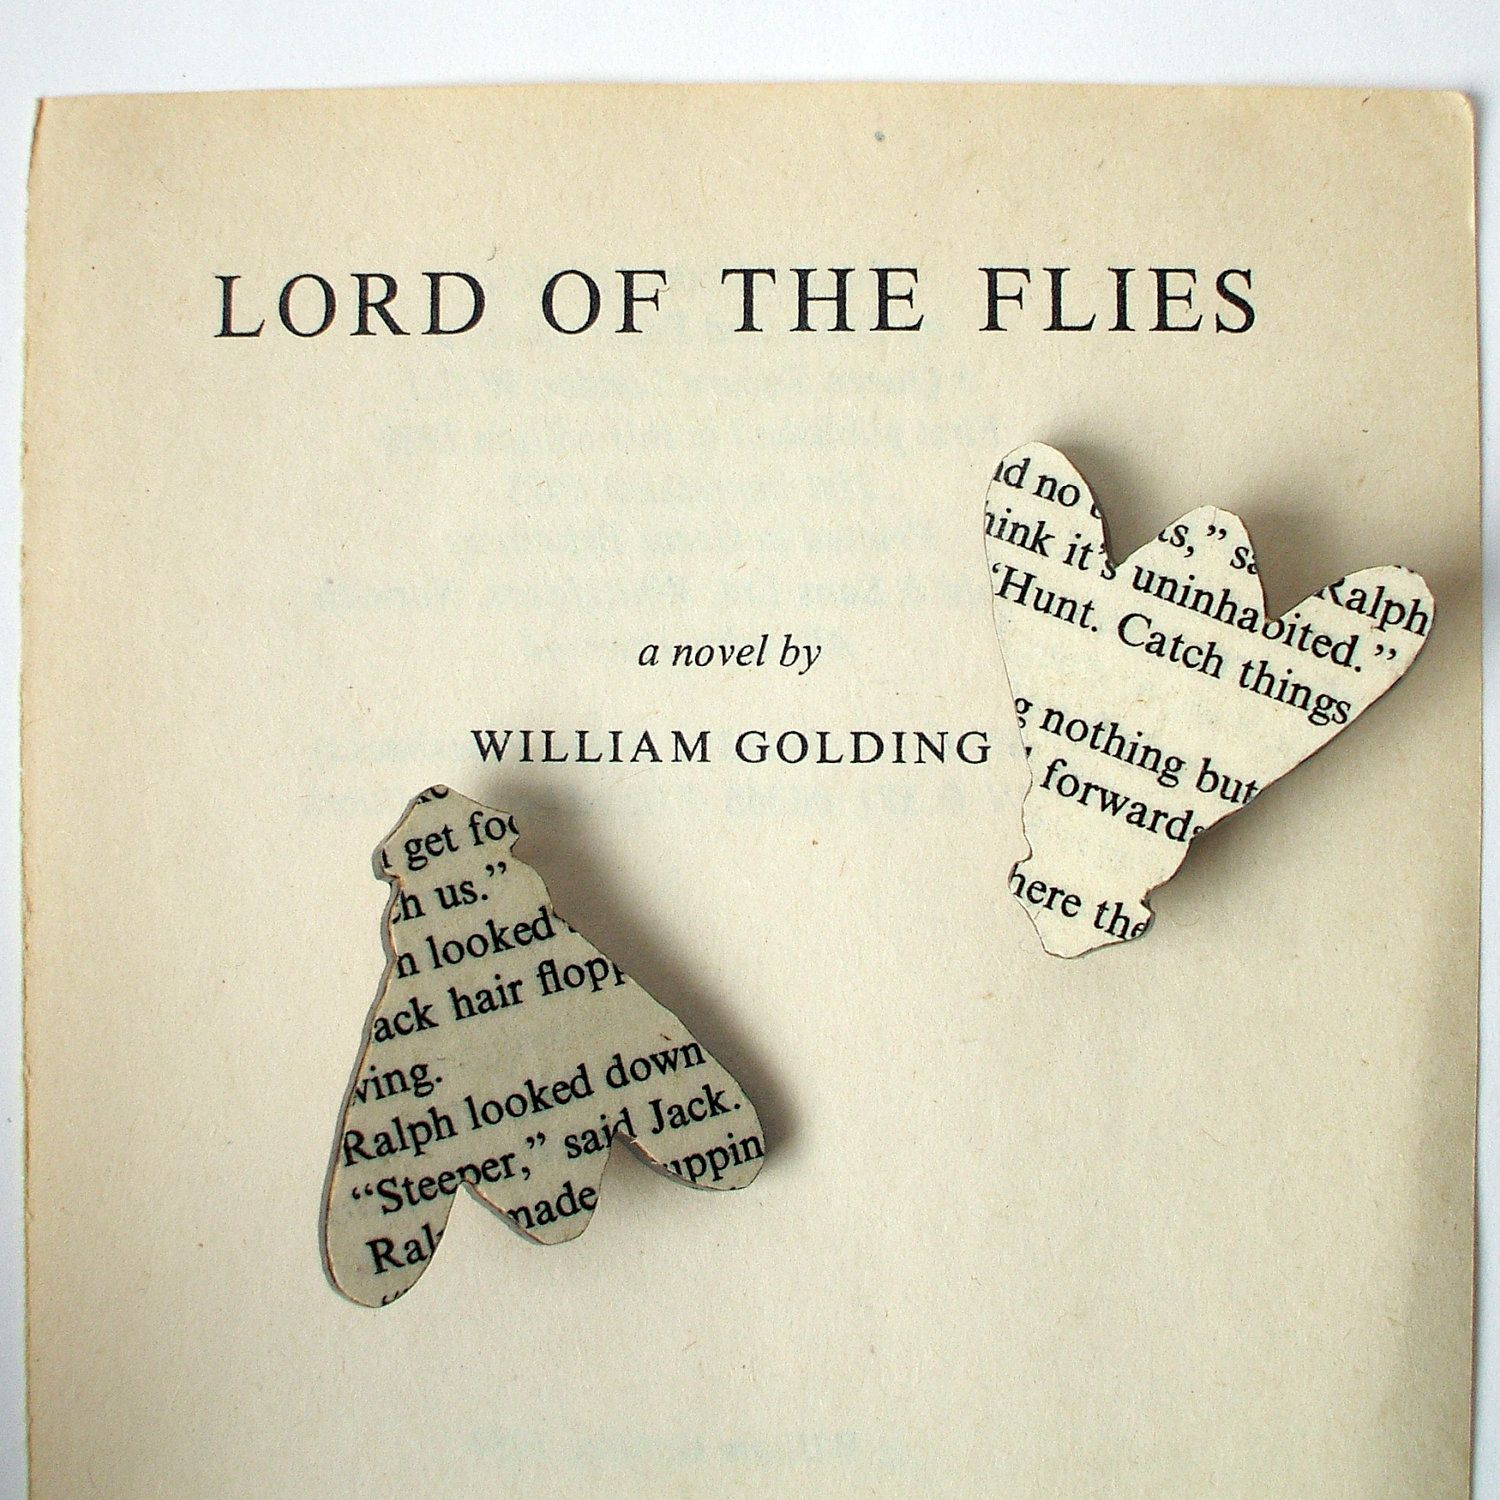 17 best images about book club party lord of the flies theme on 17 best images about book club party lord of the flies theme on conch shells gcse english and bow ties